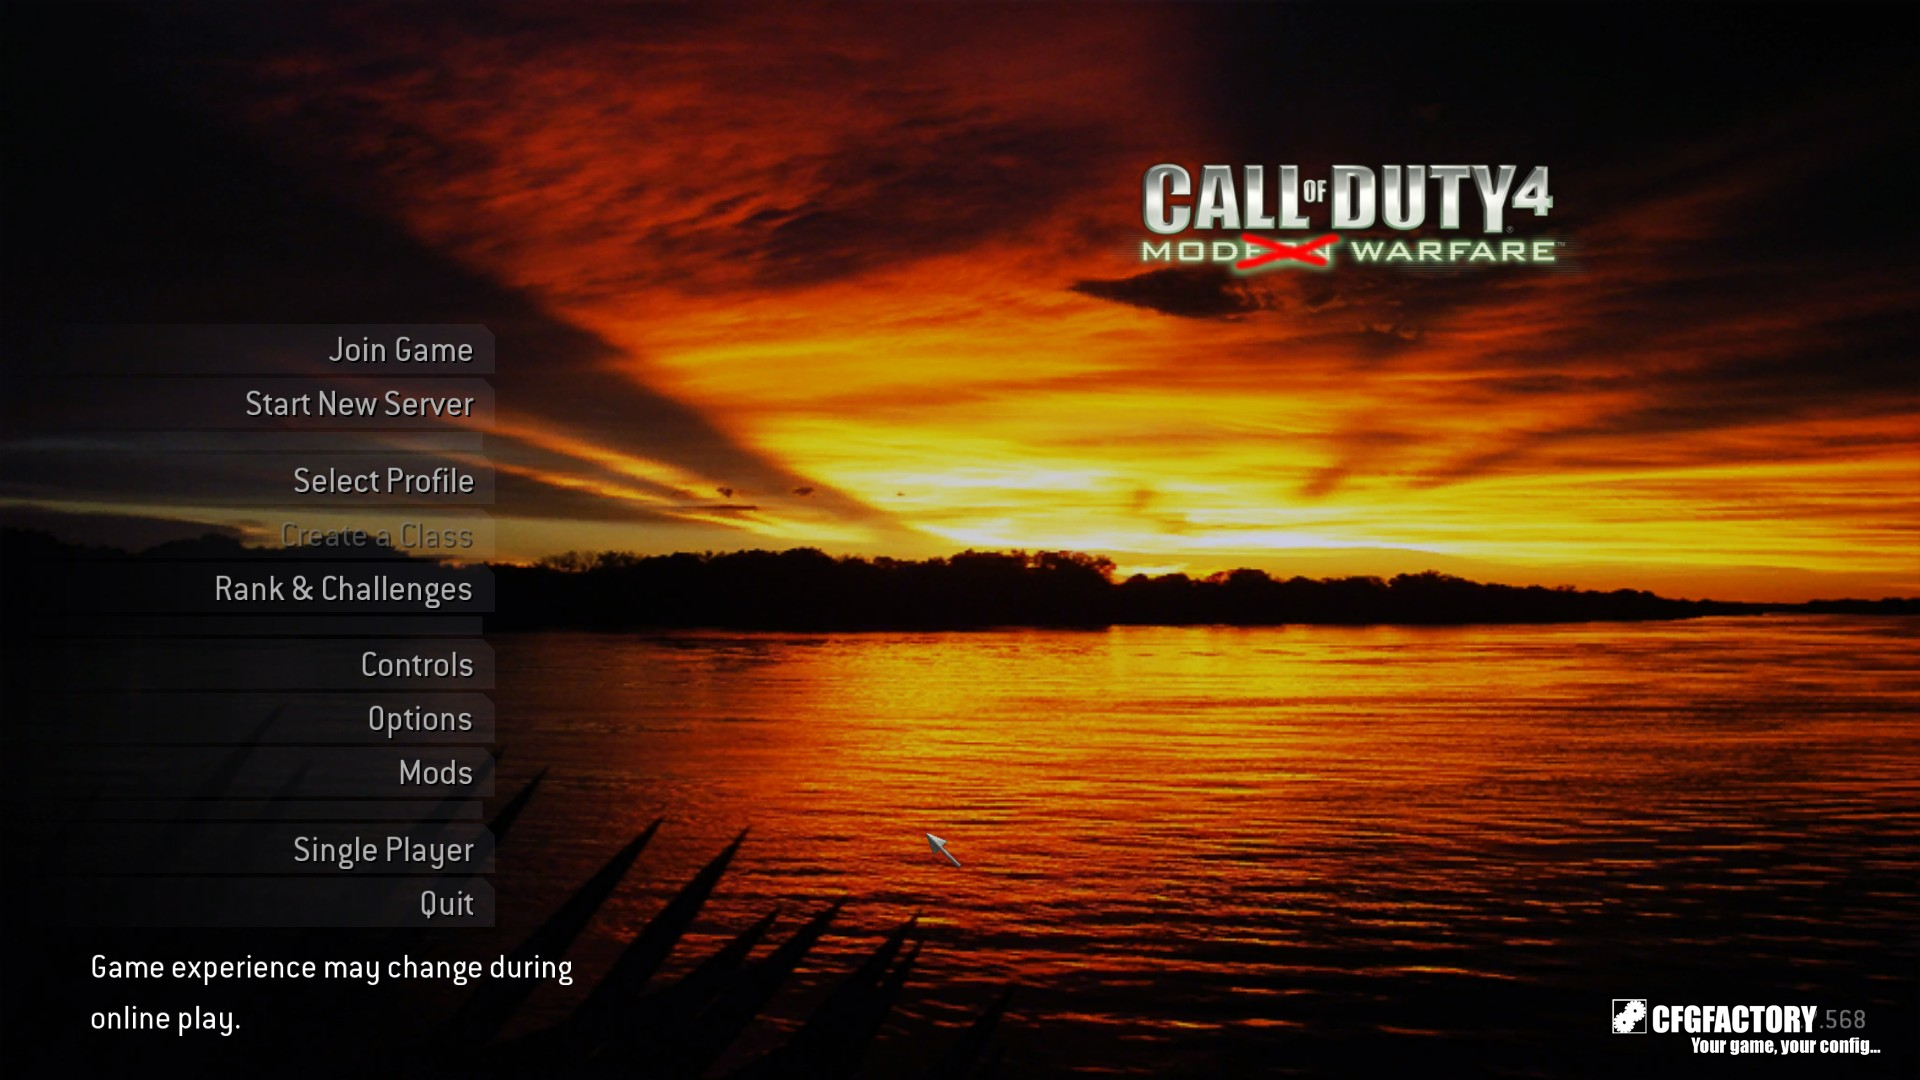 cod4, menu backgrounds, sunrise, rahab